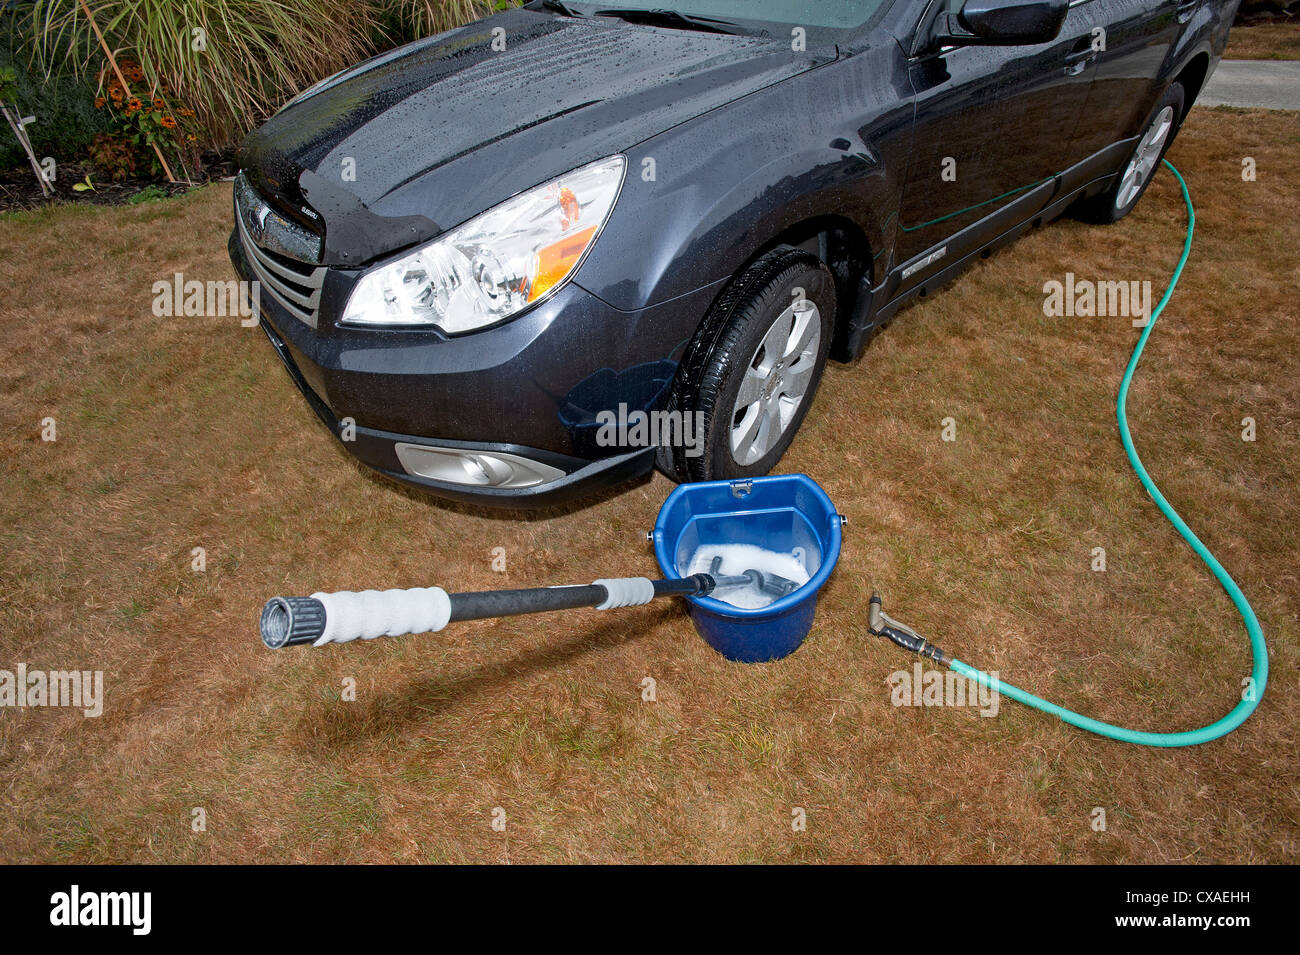 Car being washed on grass. - Stock Image